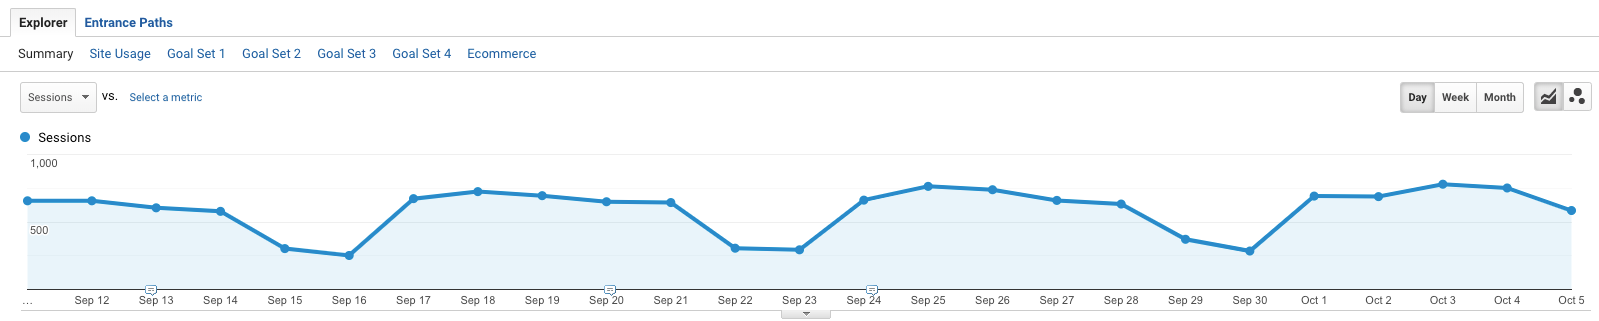 Analytics graph showing continuing SEO traffic for multiple pages